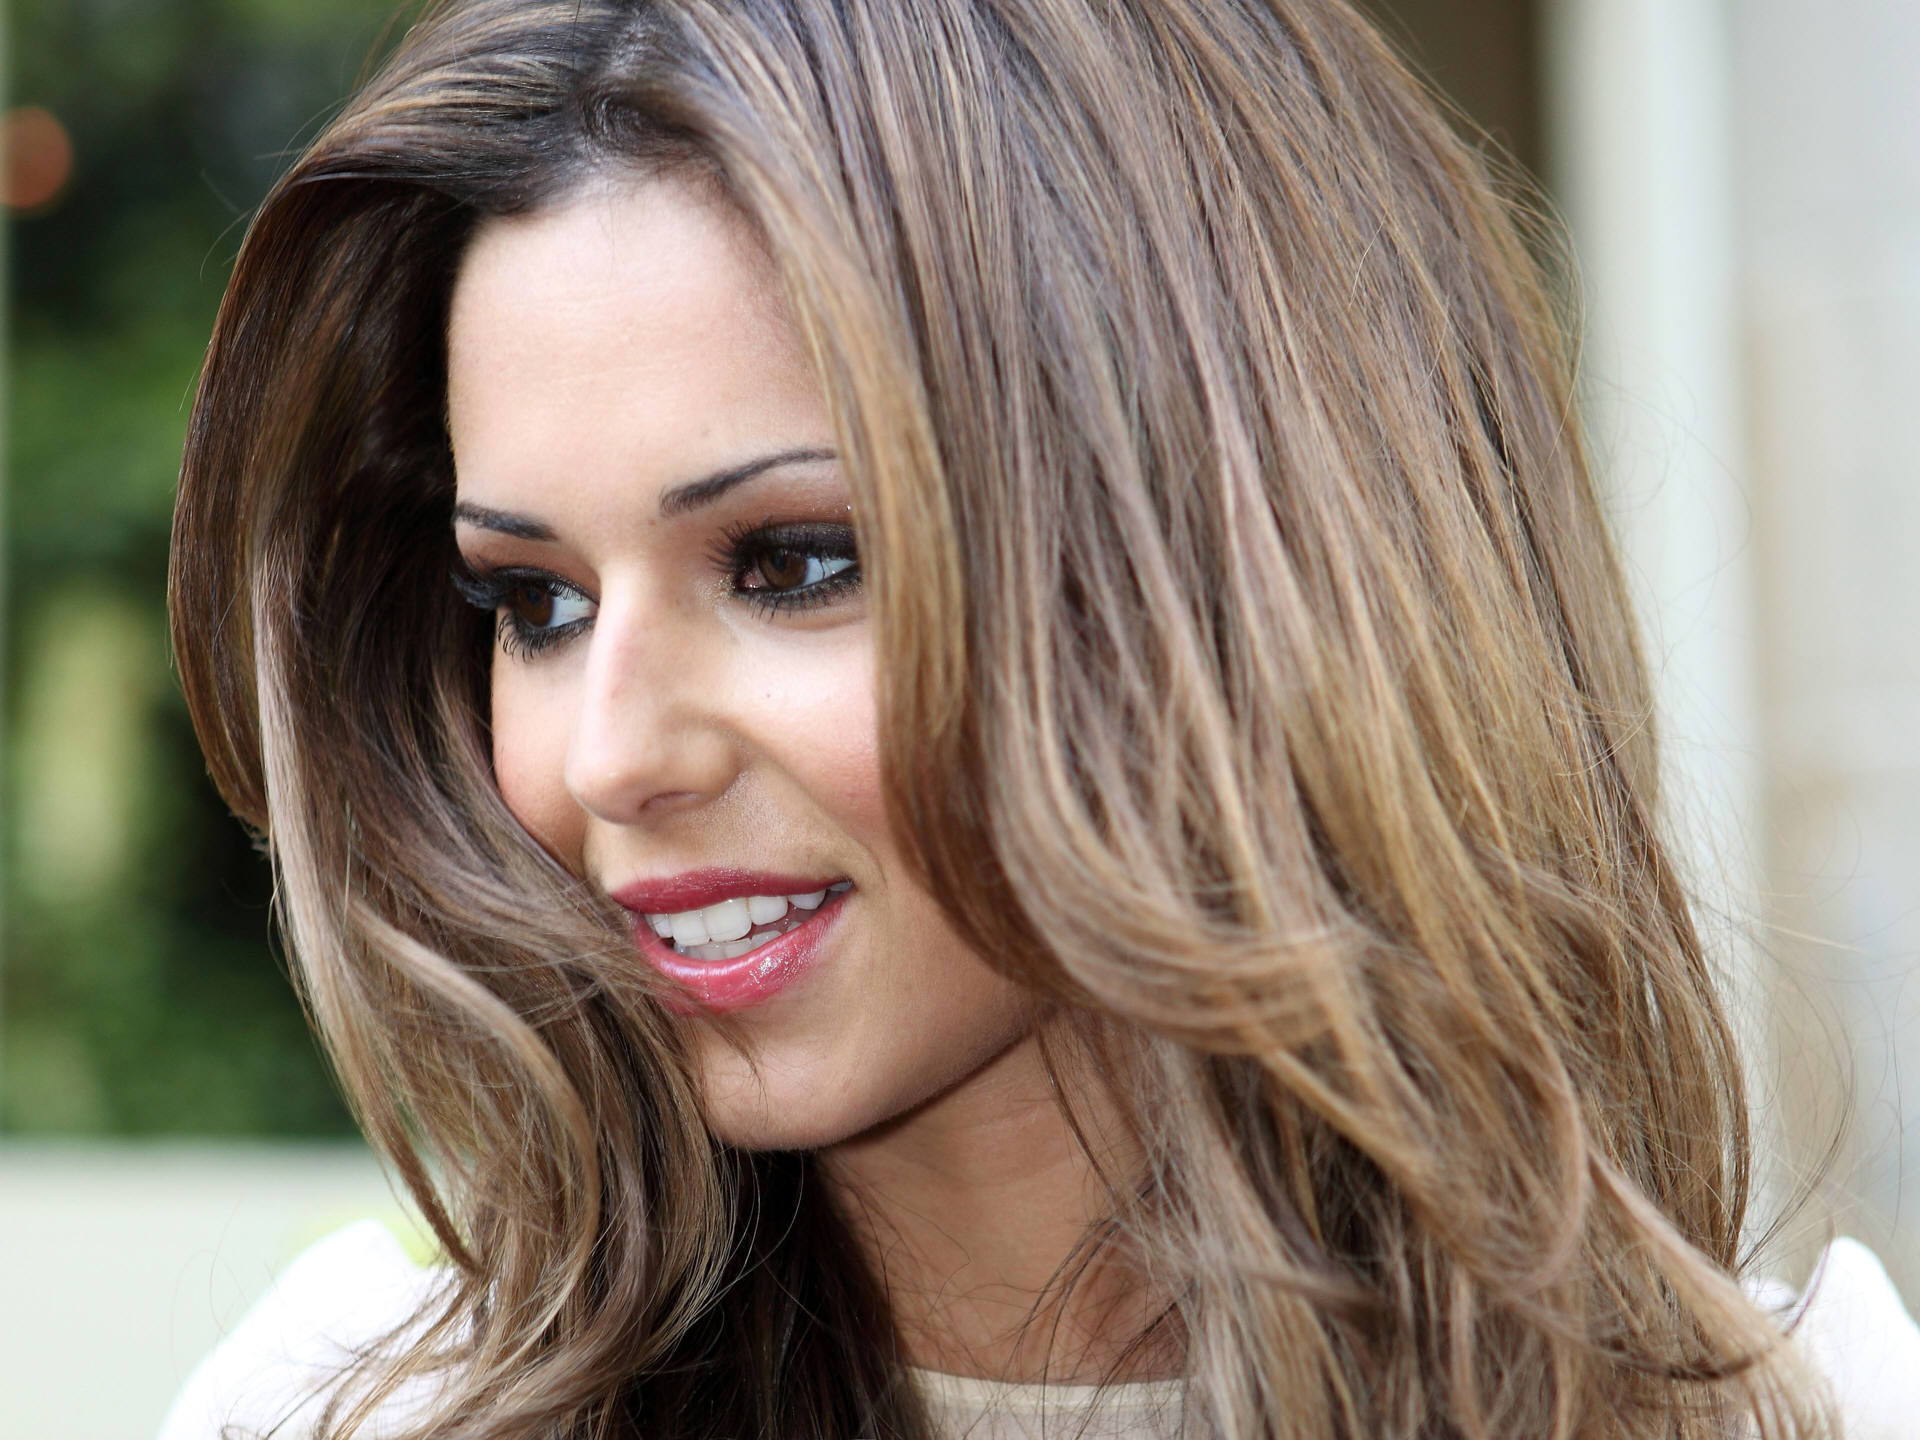 cheryl cole's dimples images cheryl cheyl cheryl HD wallpaper and ... Cheryl Cole